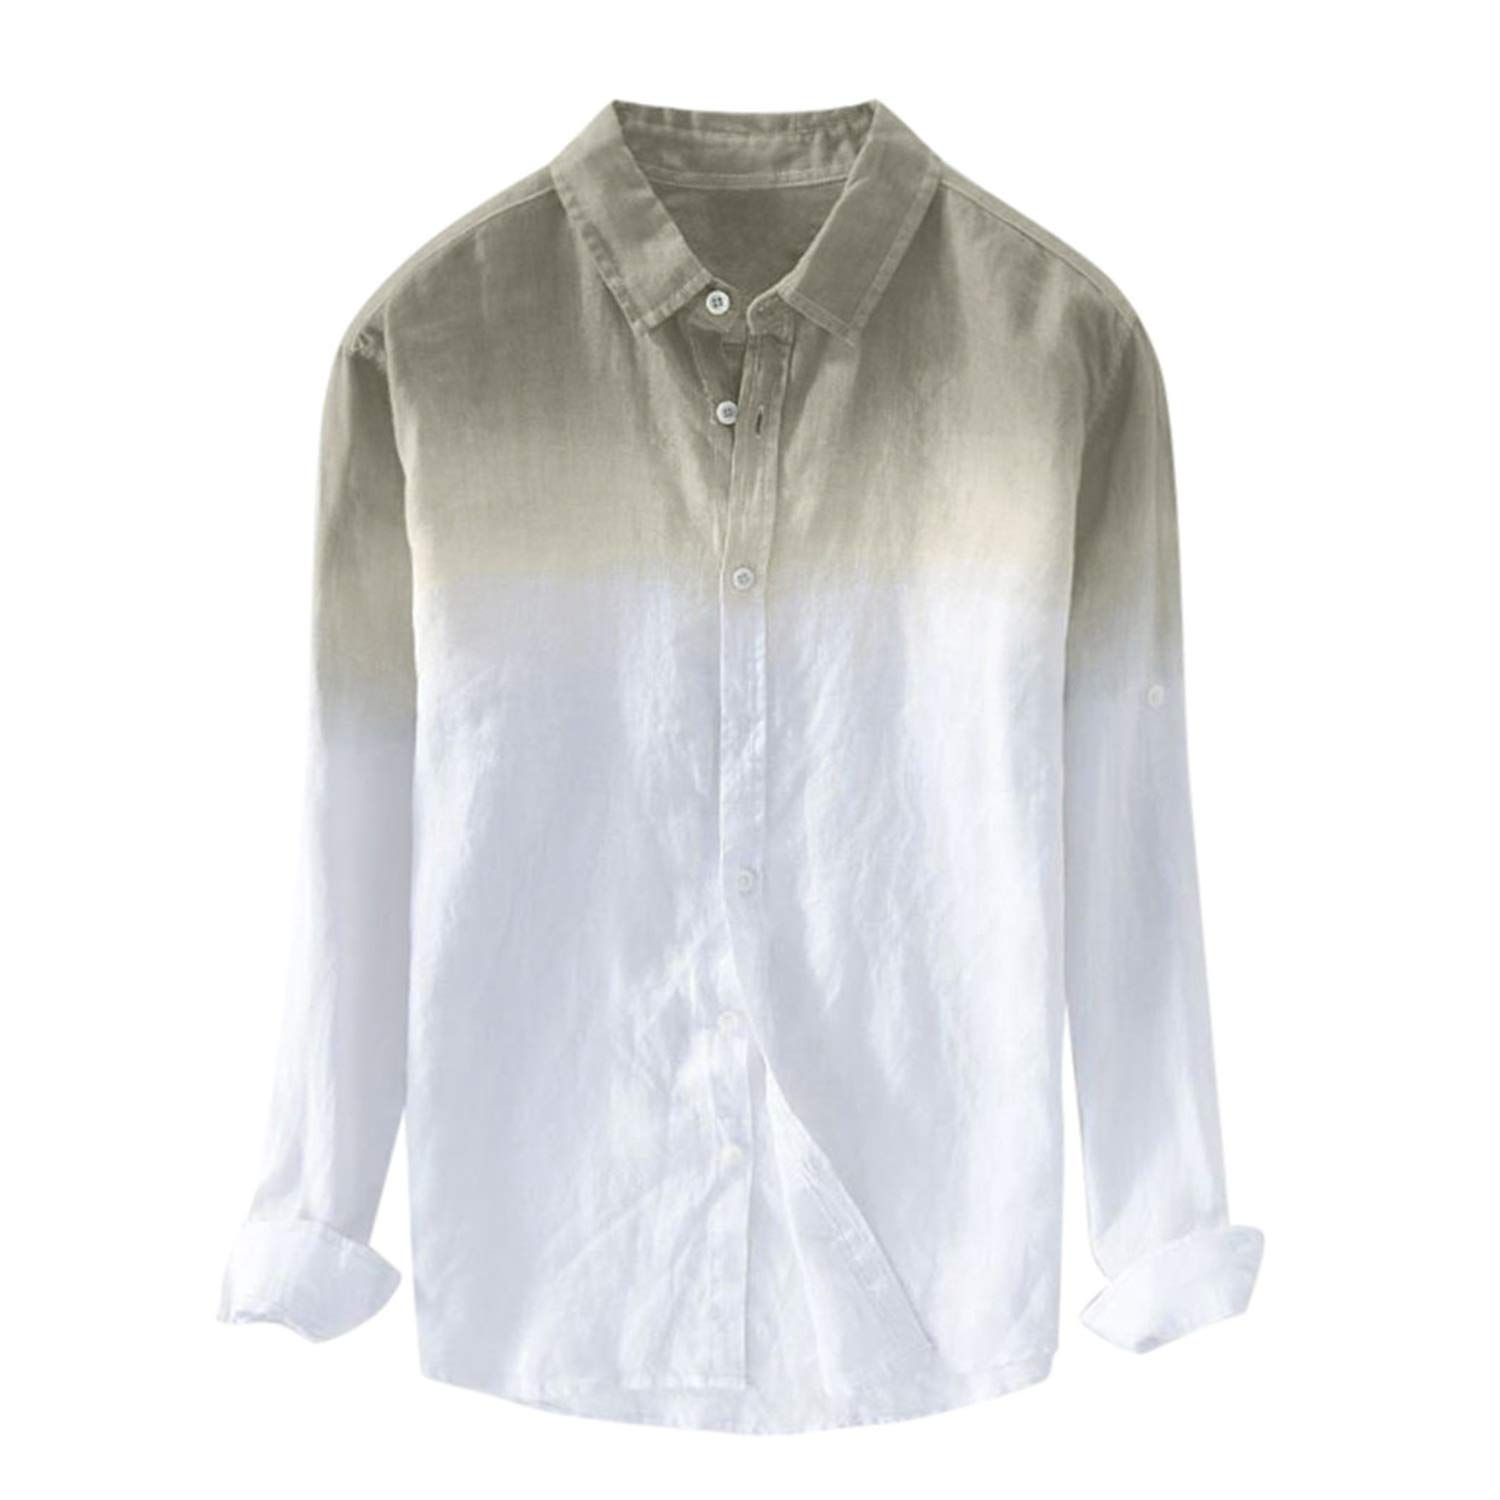 Shirt Plus Size Summer Mens Cool Thin Breathable Lapel Hanging Dyed Cotton Shirt,Gy,M,